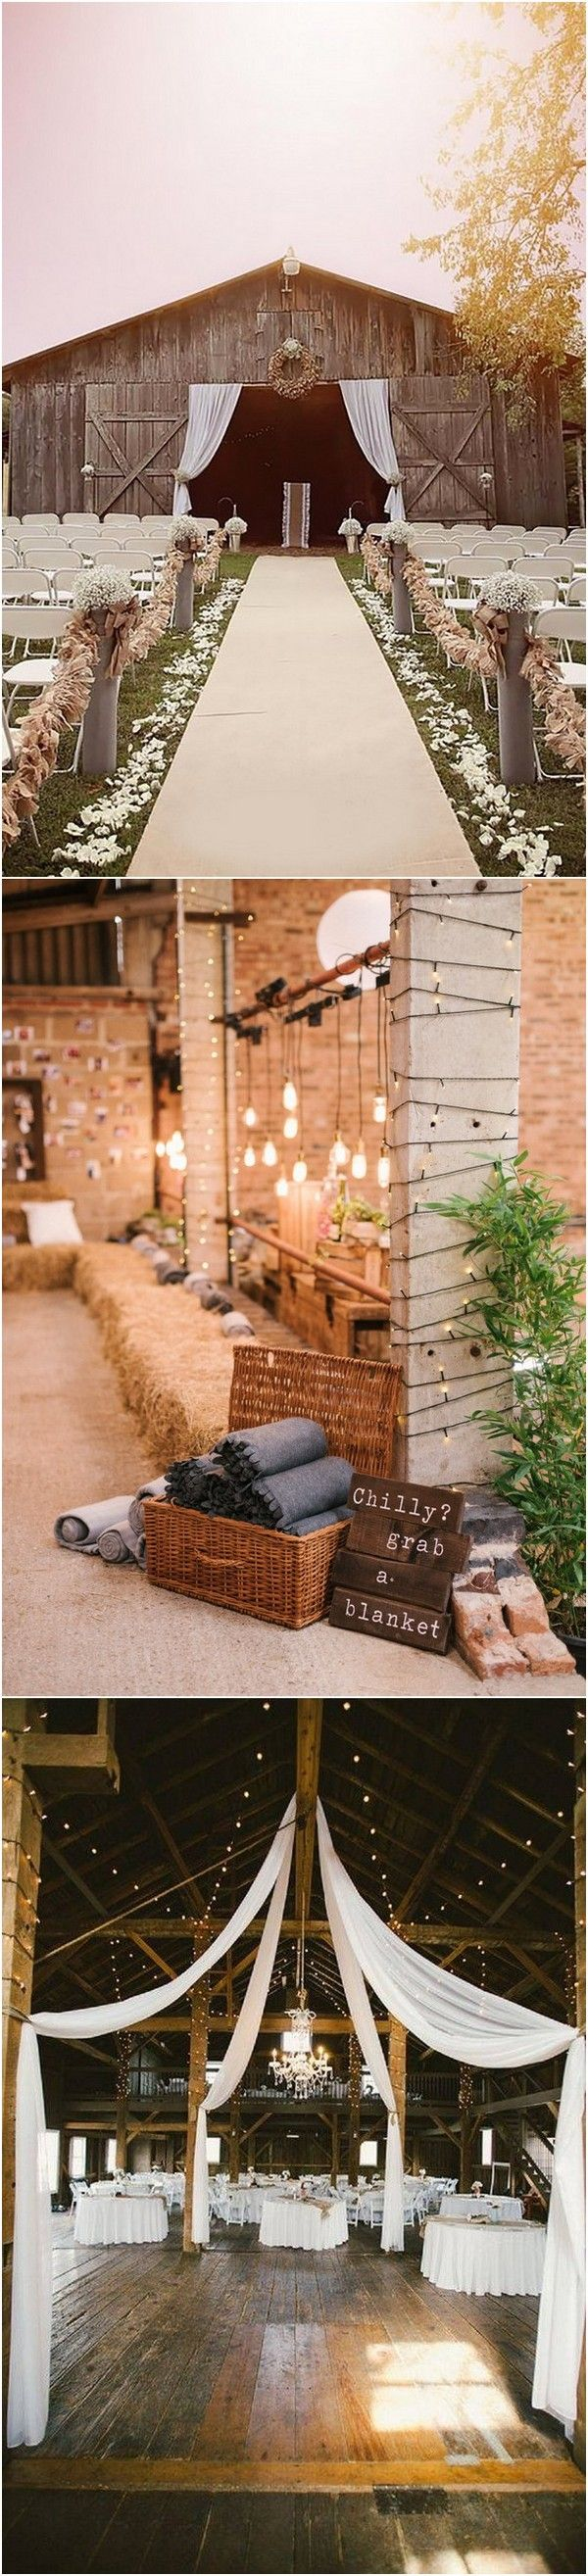 Simple wedding decoration designs   Perfect Country Rustic Barn Wedding Decoration Ideas  Page  of